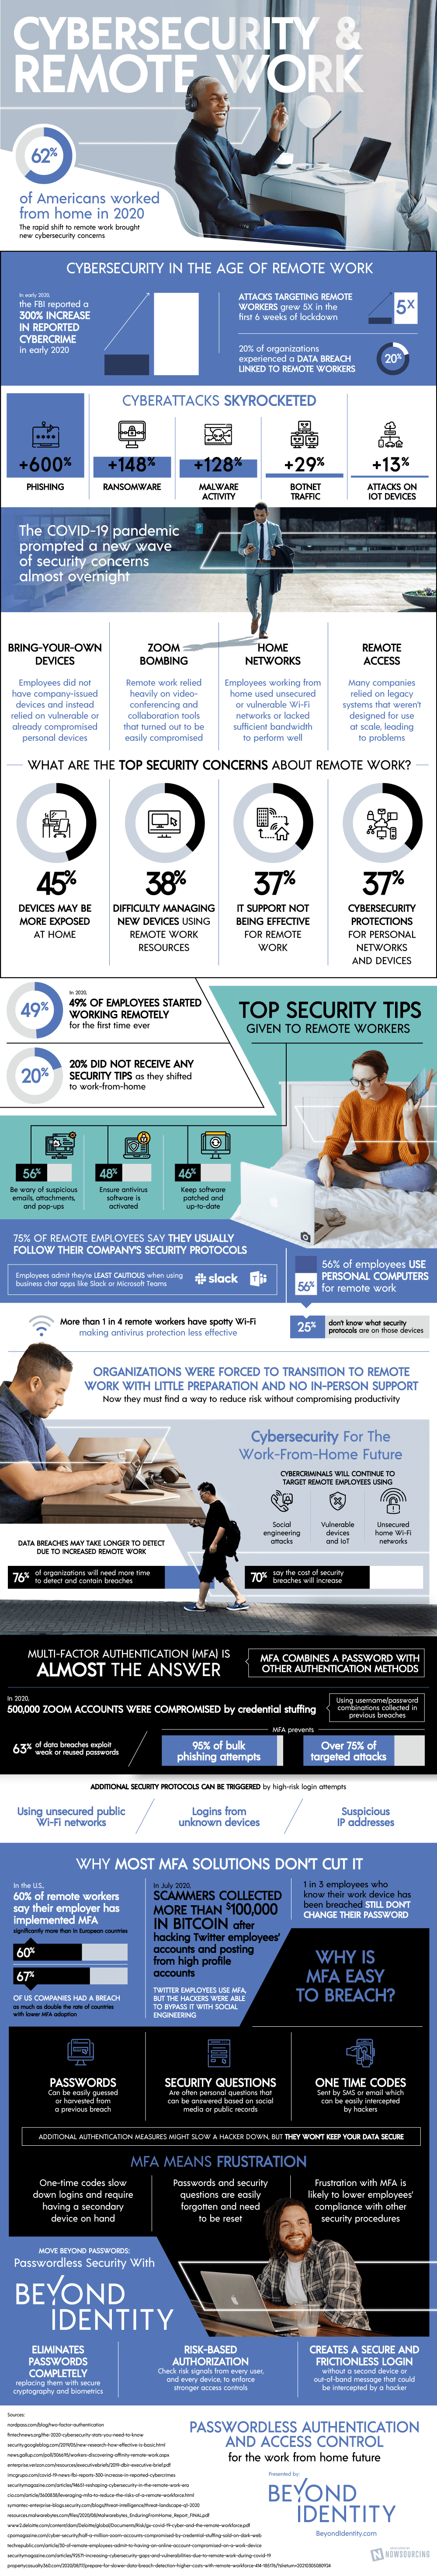 Cybersecurity and Remote Work Infographic